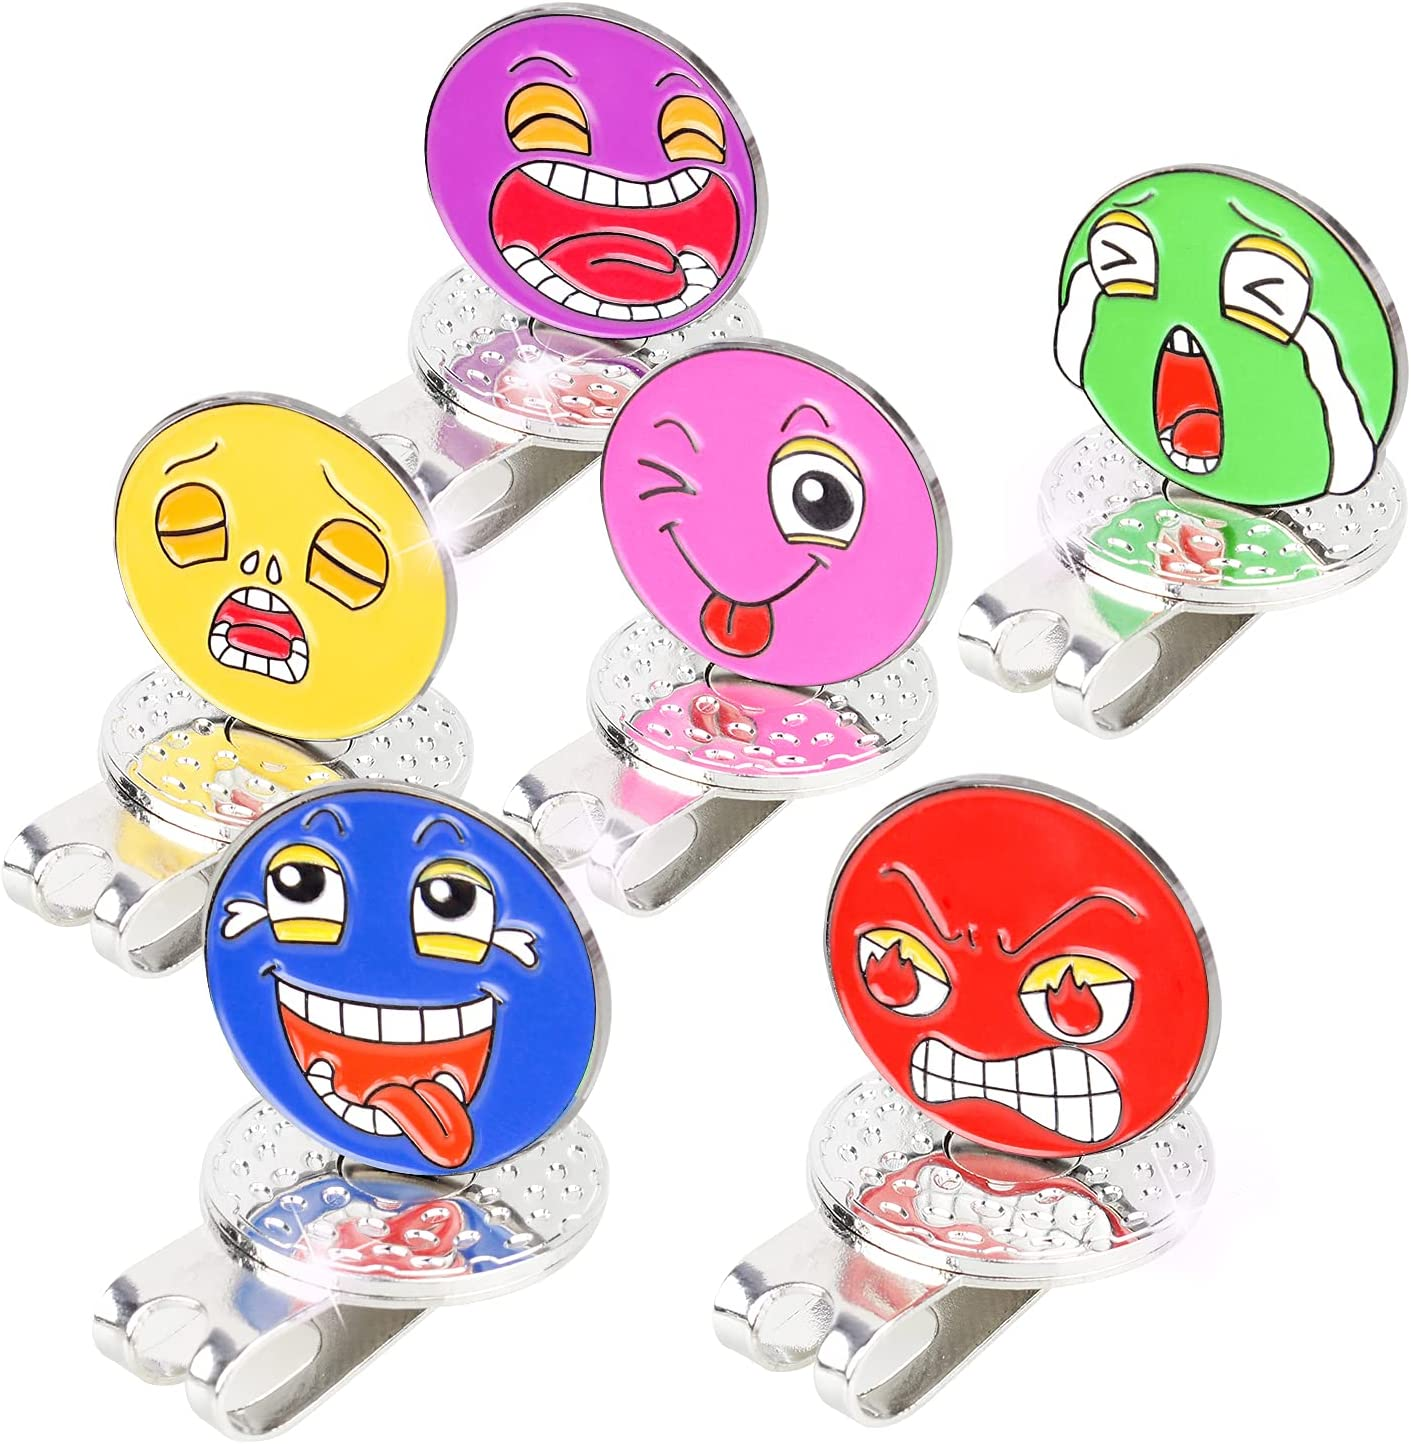 MYKUJA Golf Ball Markers Hat Clip with Funny Expressions Add More Interest for Golfers, Premium Gift Pack of 6 : Everything Else